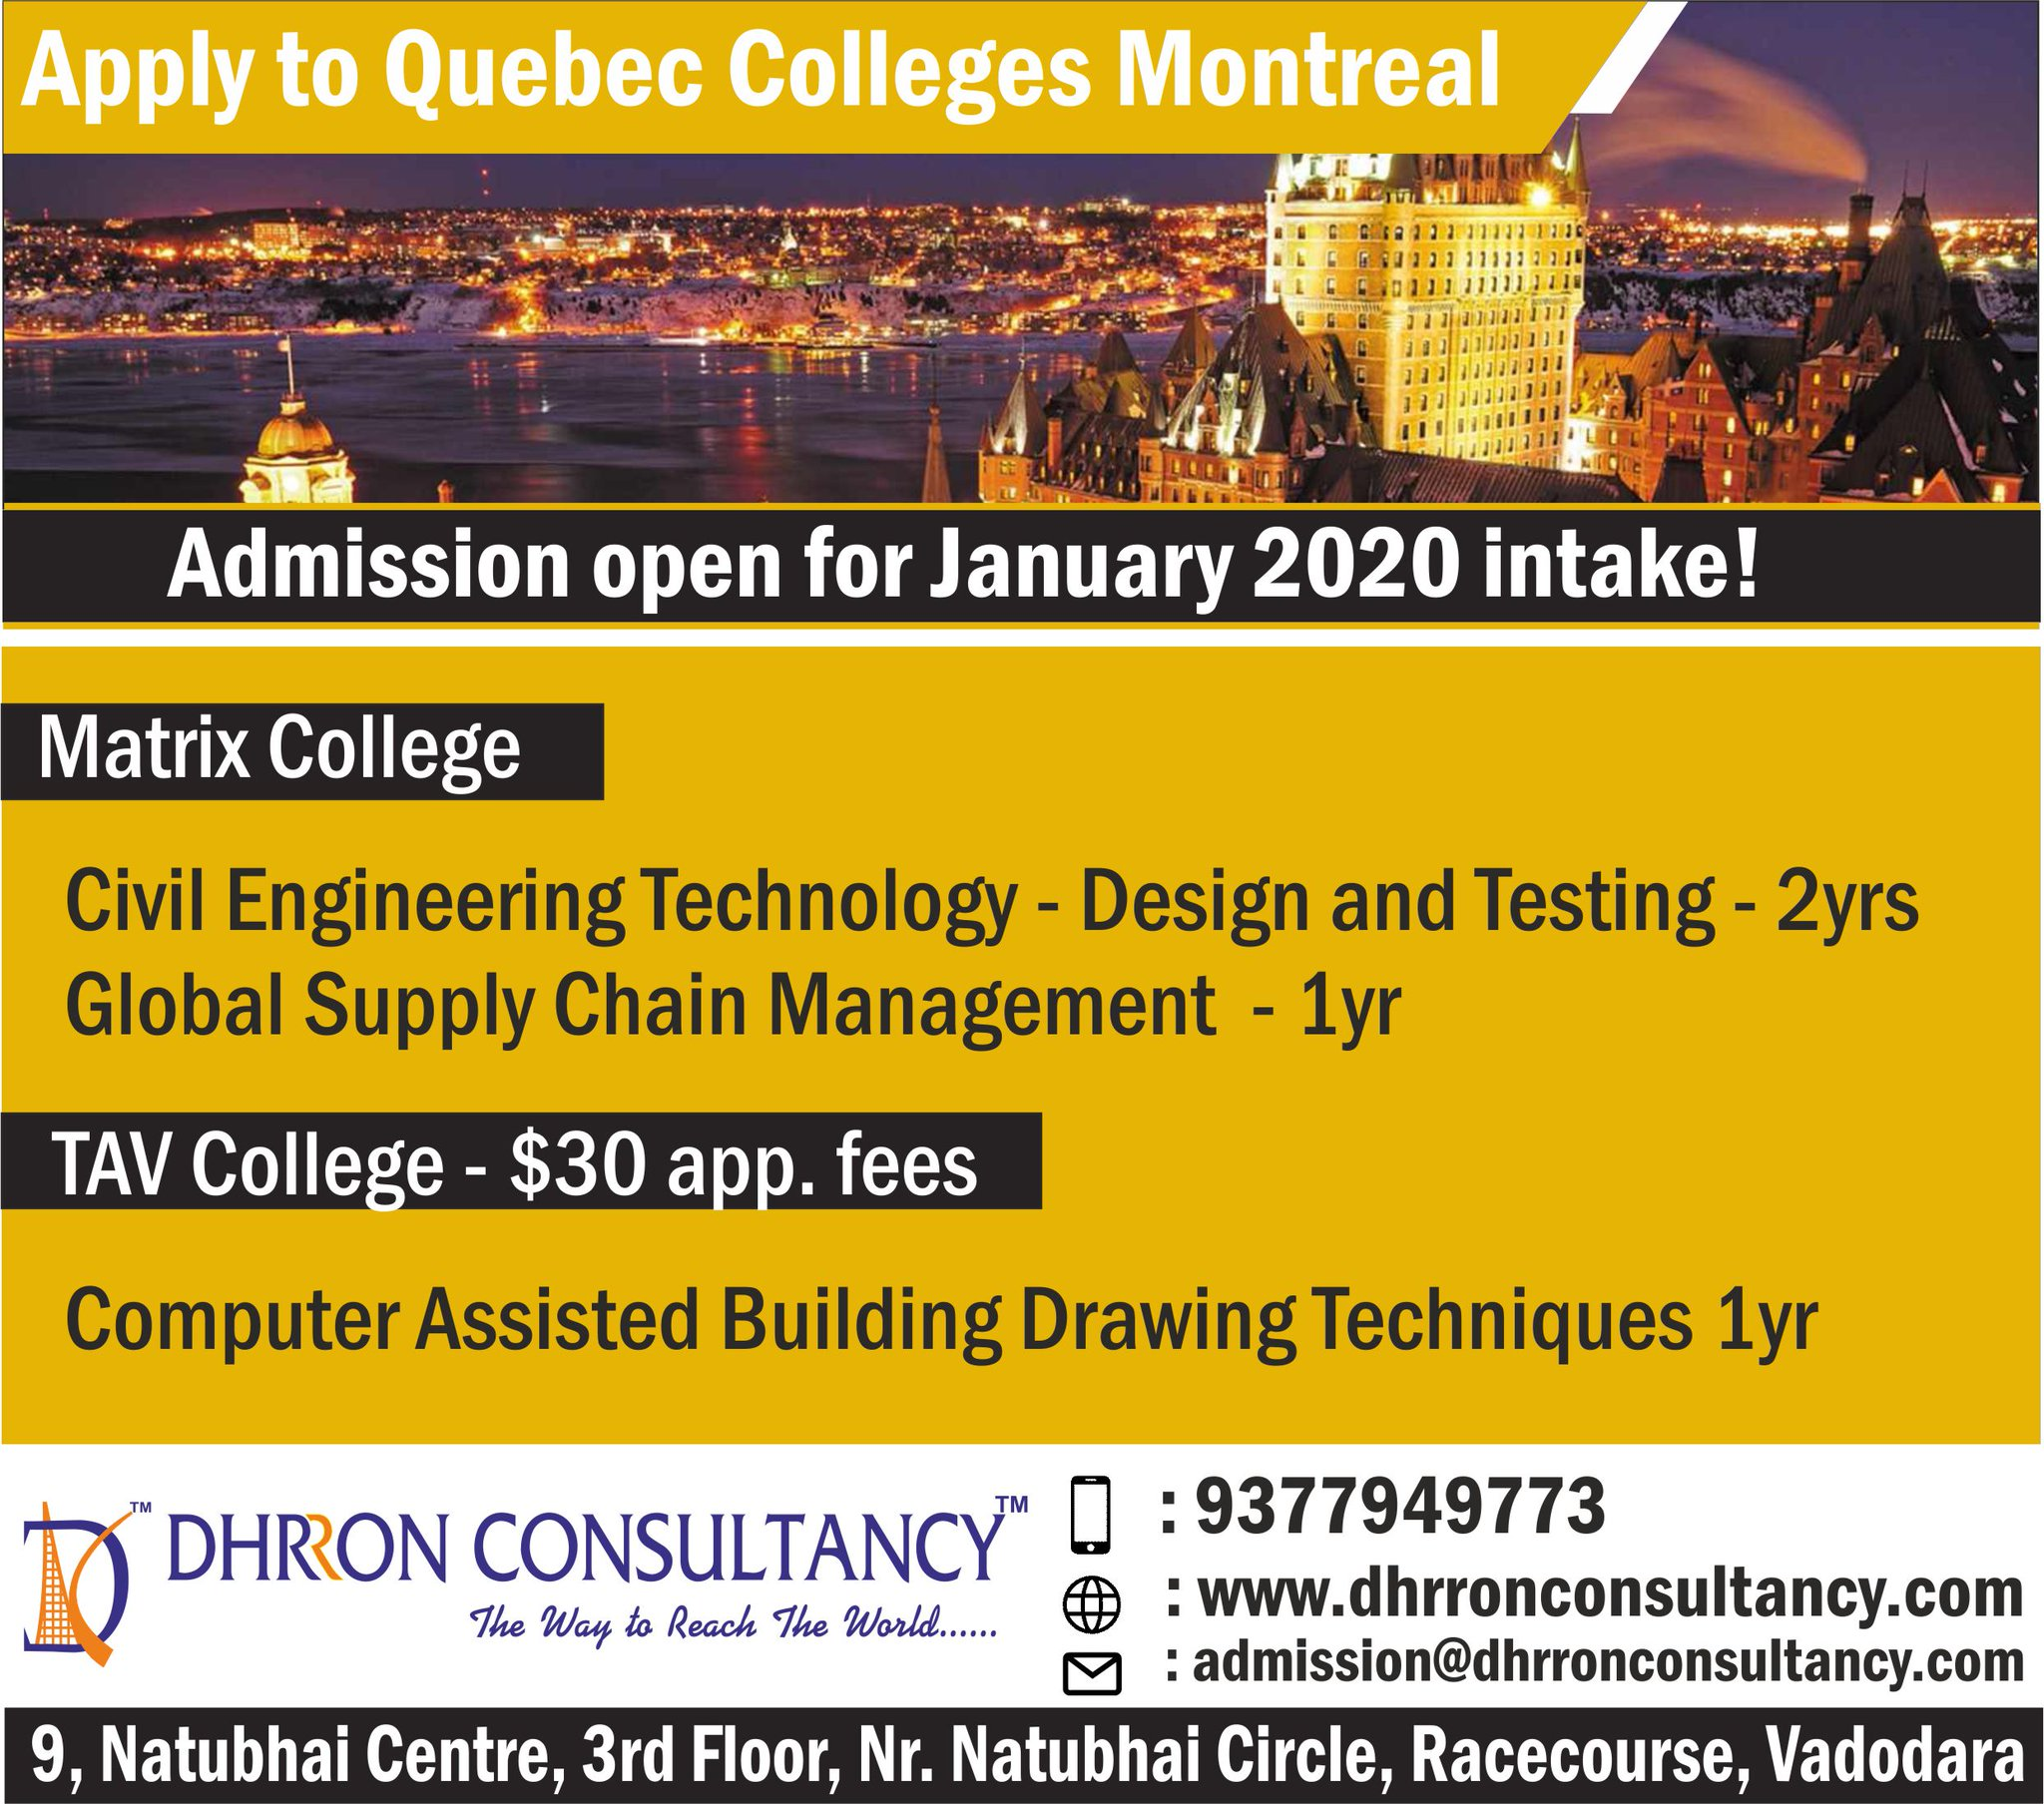 Dhrron Consultancy On Twitter Admission Open For Quebec Colleges For January2020intake Hurry Up Send Your Applications Before Seats Get Full Call 91 9377949773 Web Https T Co Wtbmdwdwef Https T Co Boyvvxpq4f